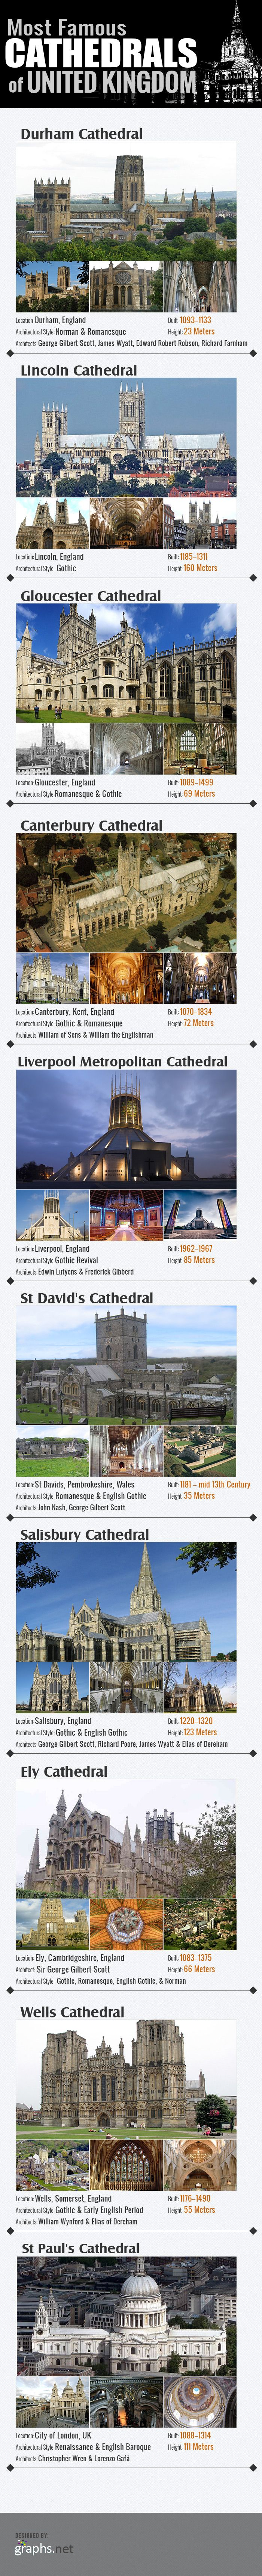 Most Famous Cathedrals of United Kingdom